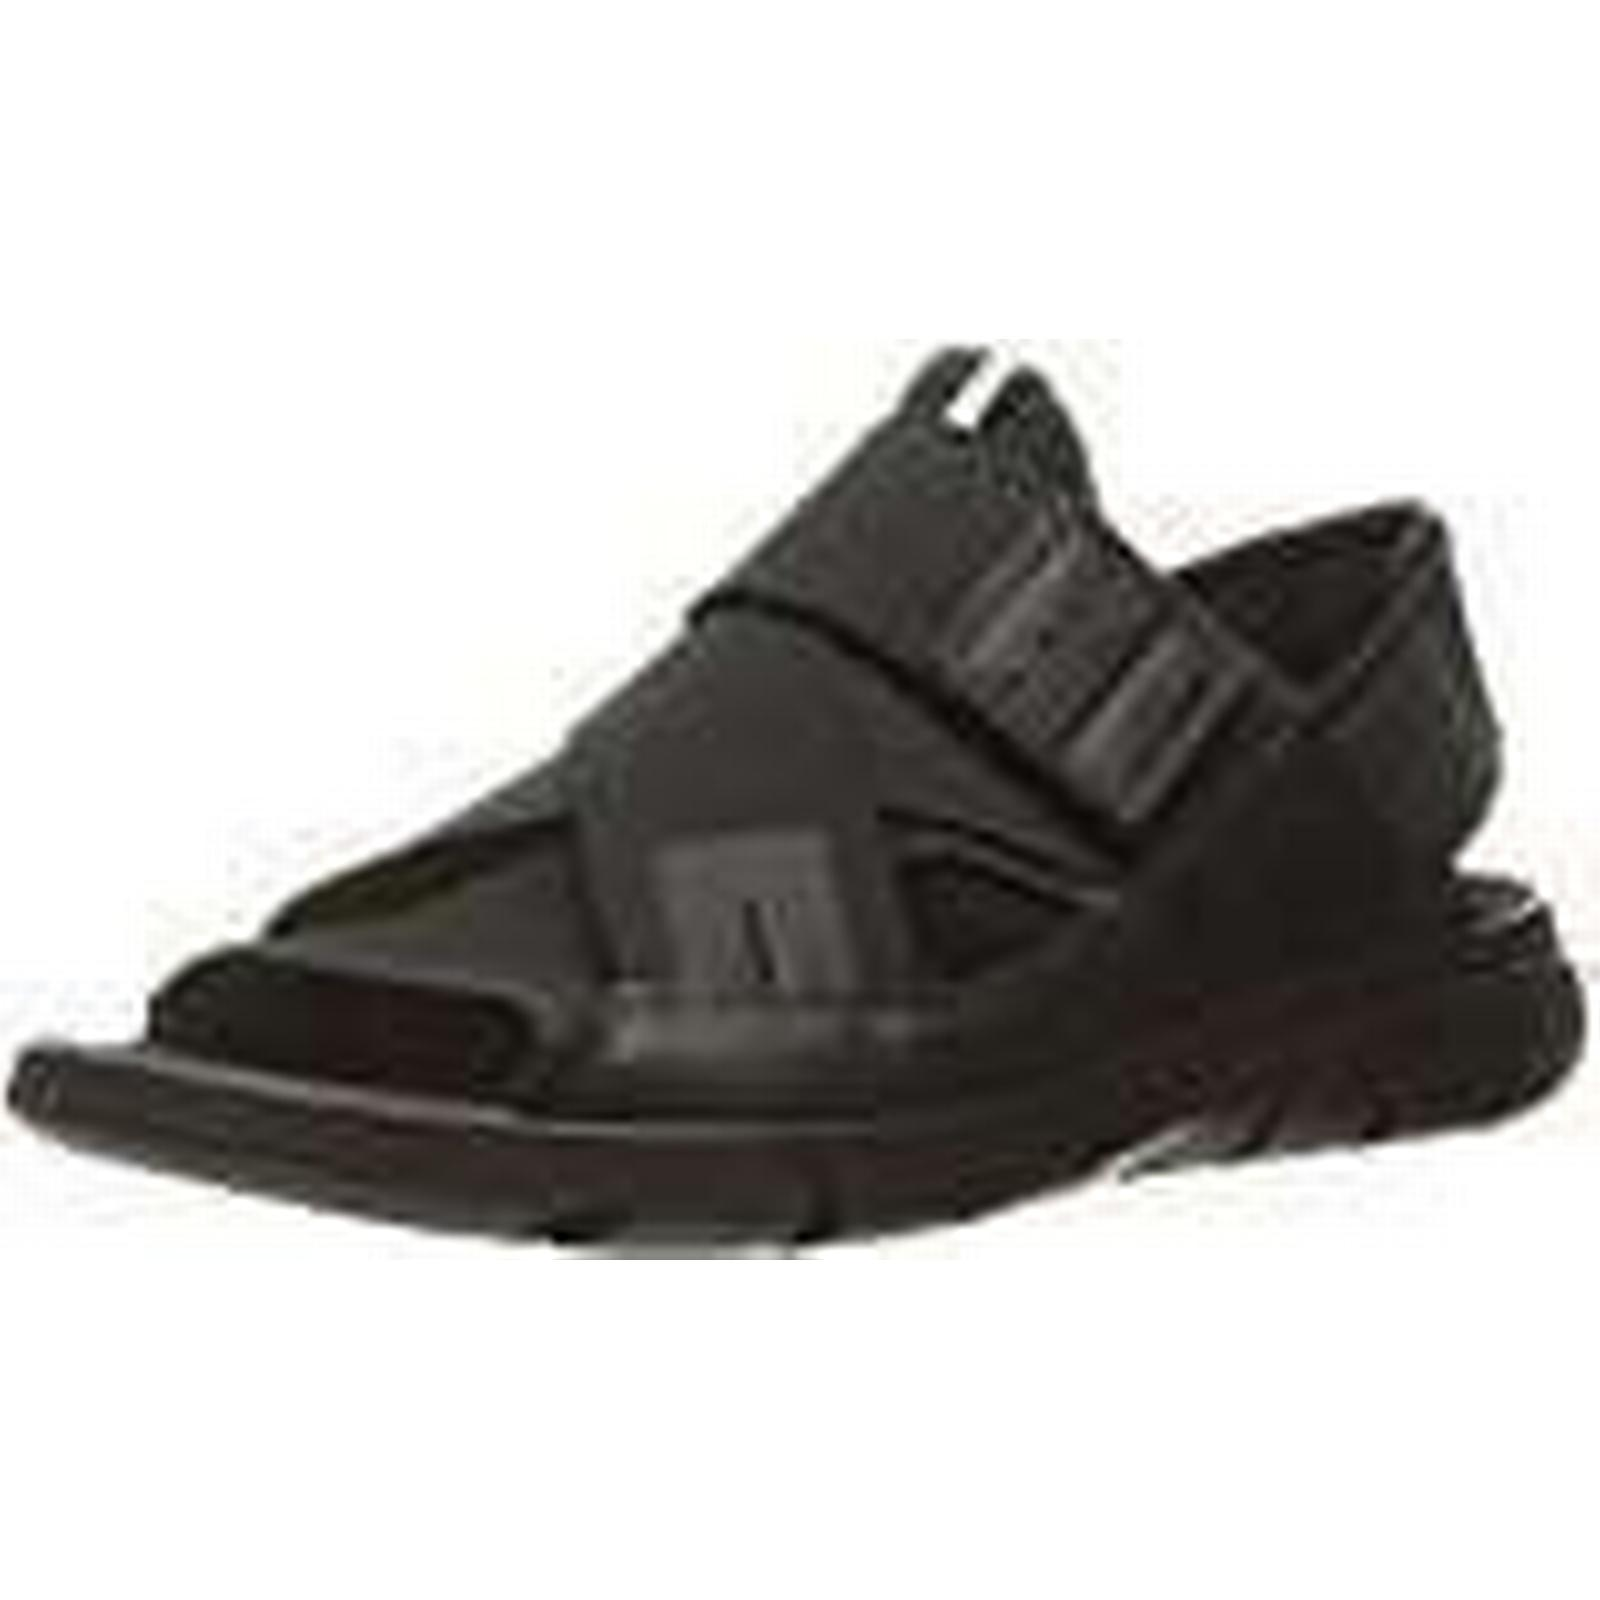 ECCO Men's Black Intrinsic Sandal, Black Men's (51052black/black), 7.5 UK f4e085